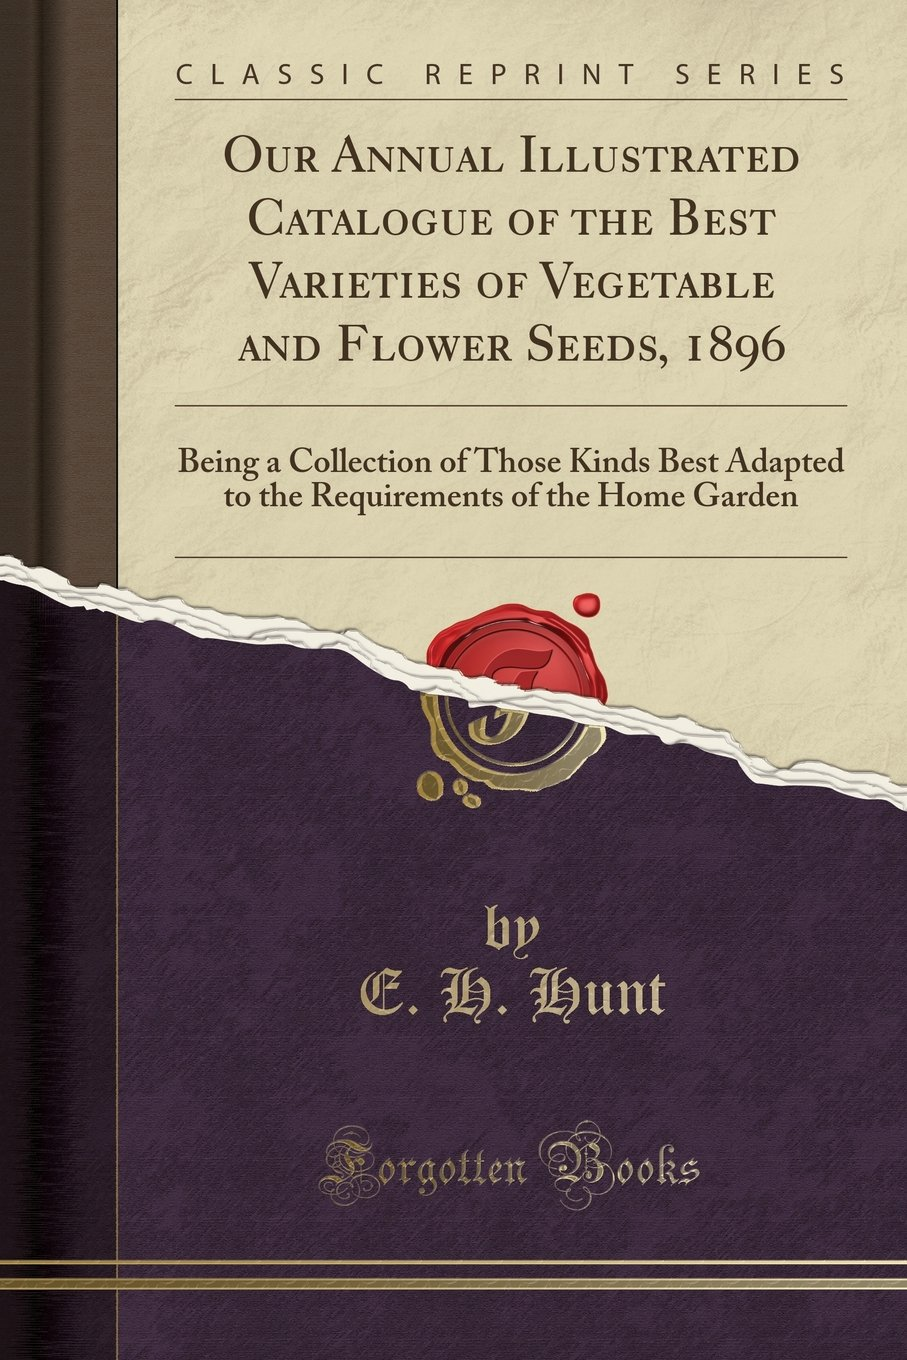 Our Annual Illustrated Catalogue of the Best Varieties of Vegetable and Flower Seeds, 1896: Being a Collection of Those Kinds Best Adapted to the Requirements of the Home Garden (Classic Reprint) pdf epub